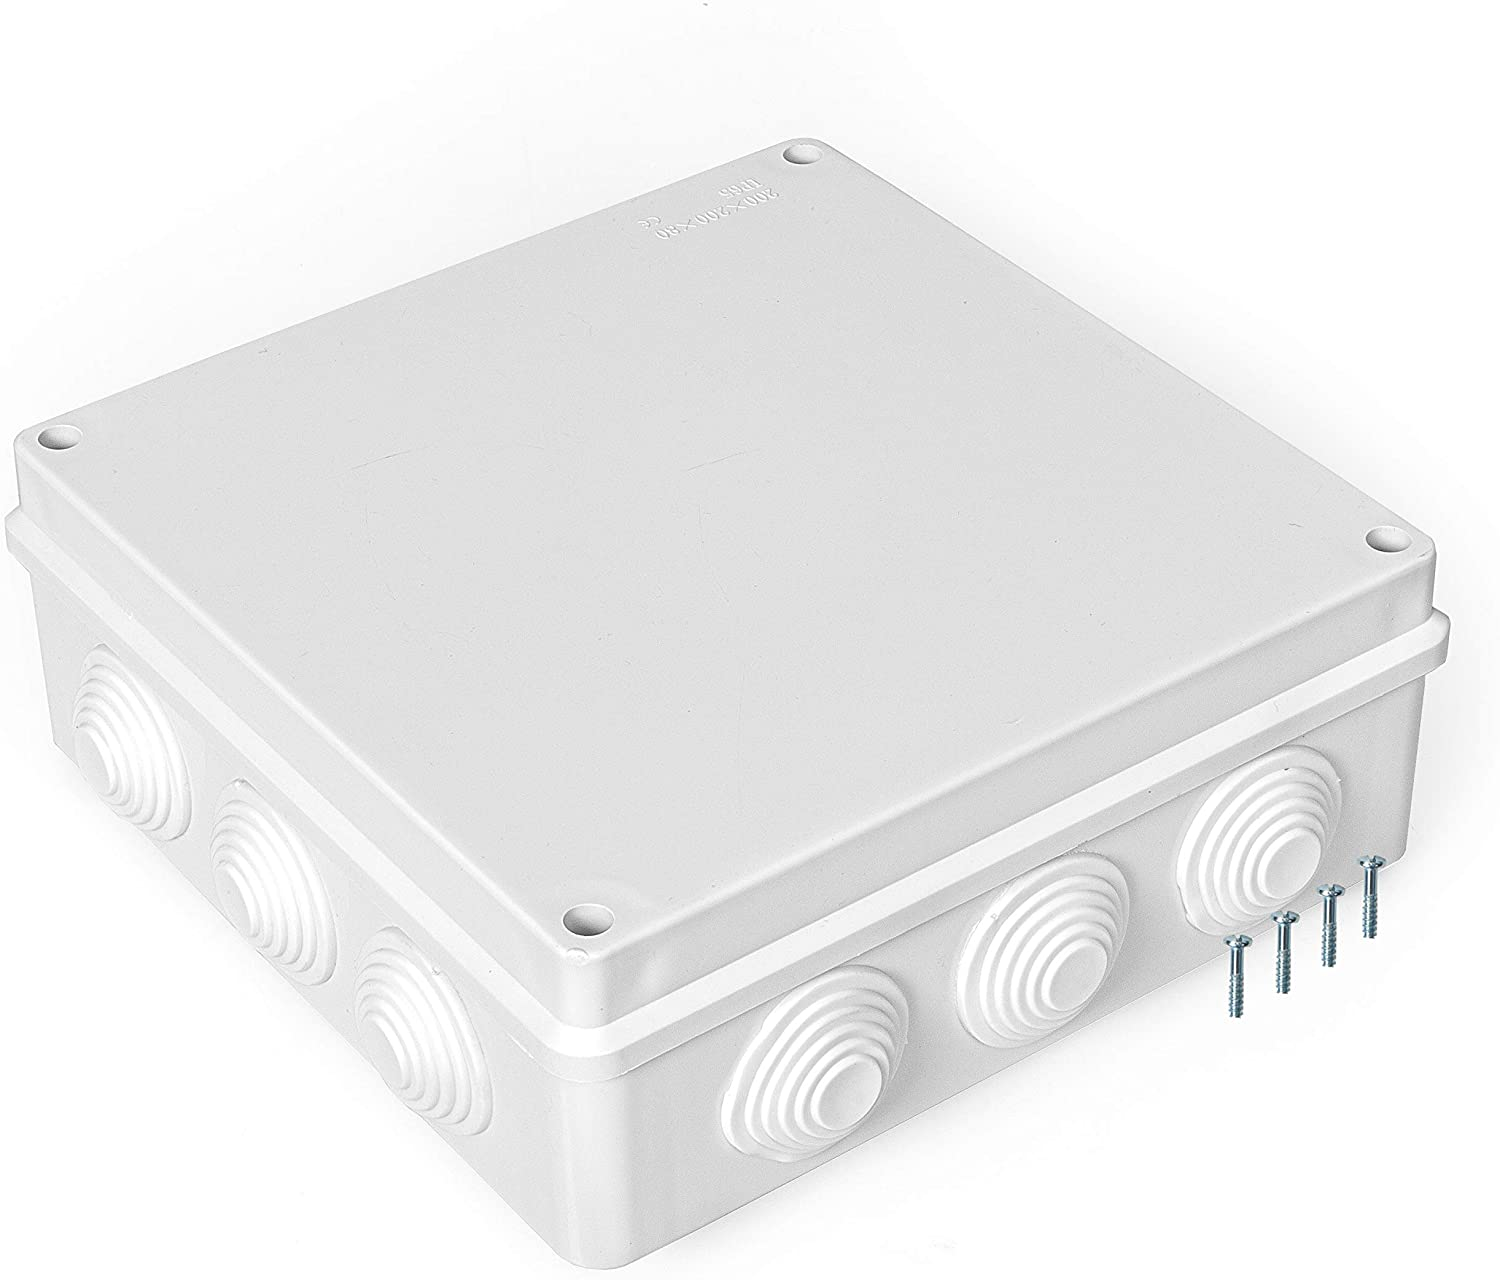 Outdoor Electrical Junction Box - 8 x 8 Inch Waterproof Plastic Box with Cover for Electronics